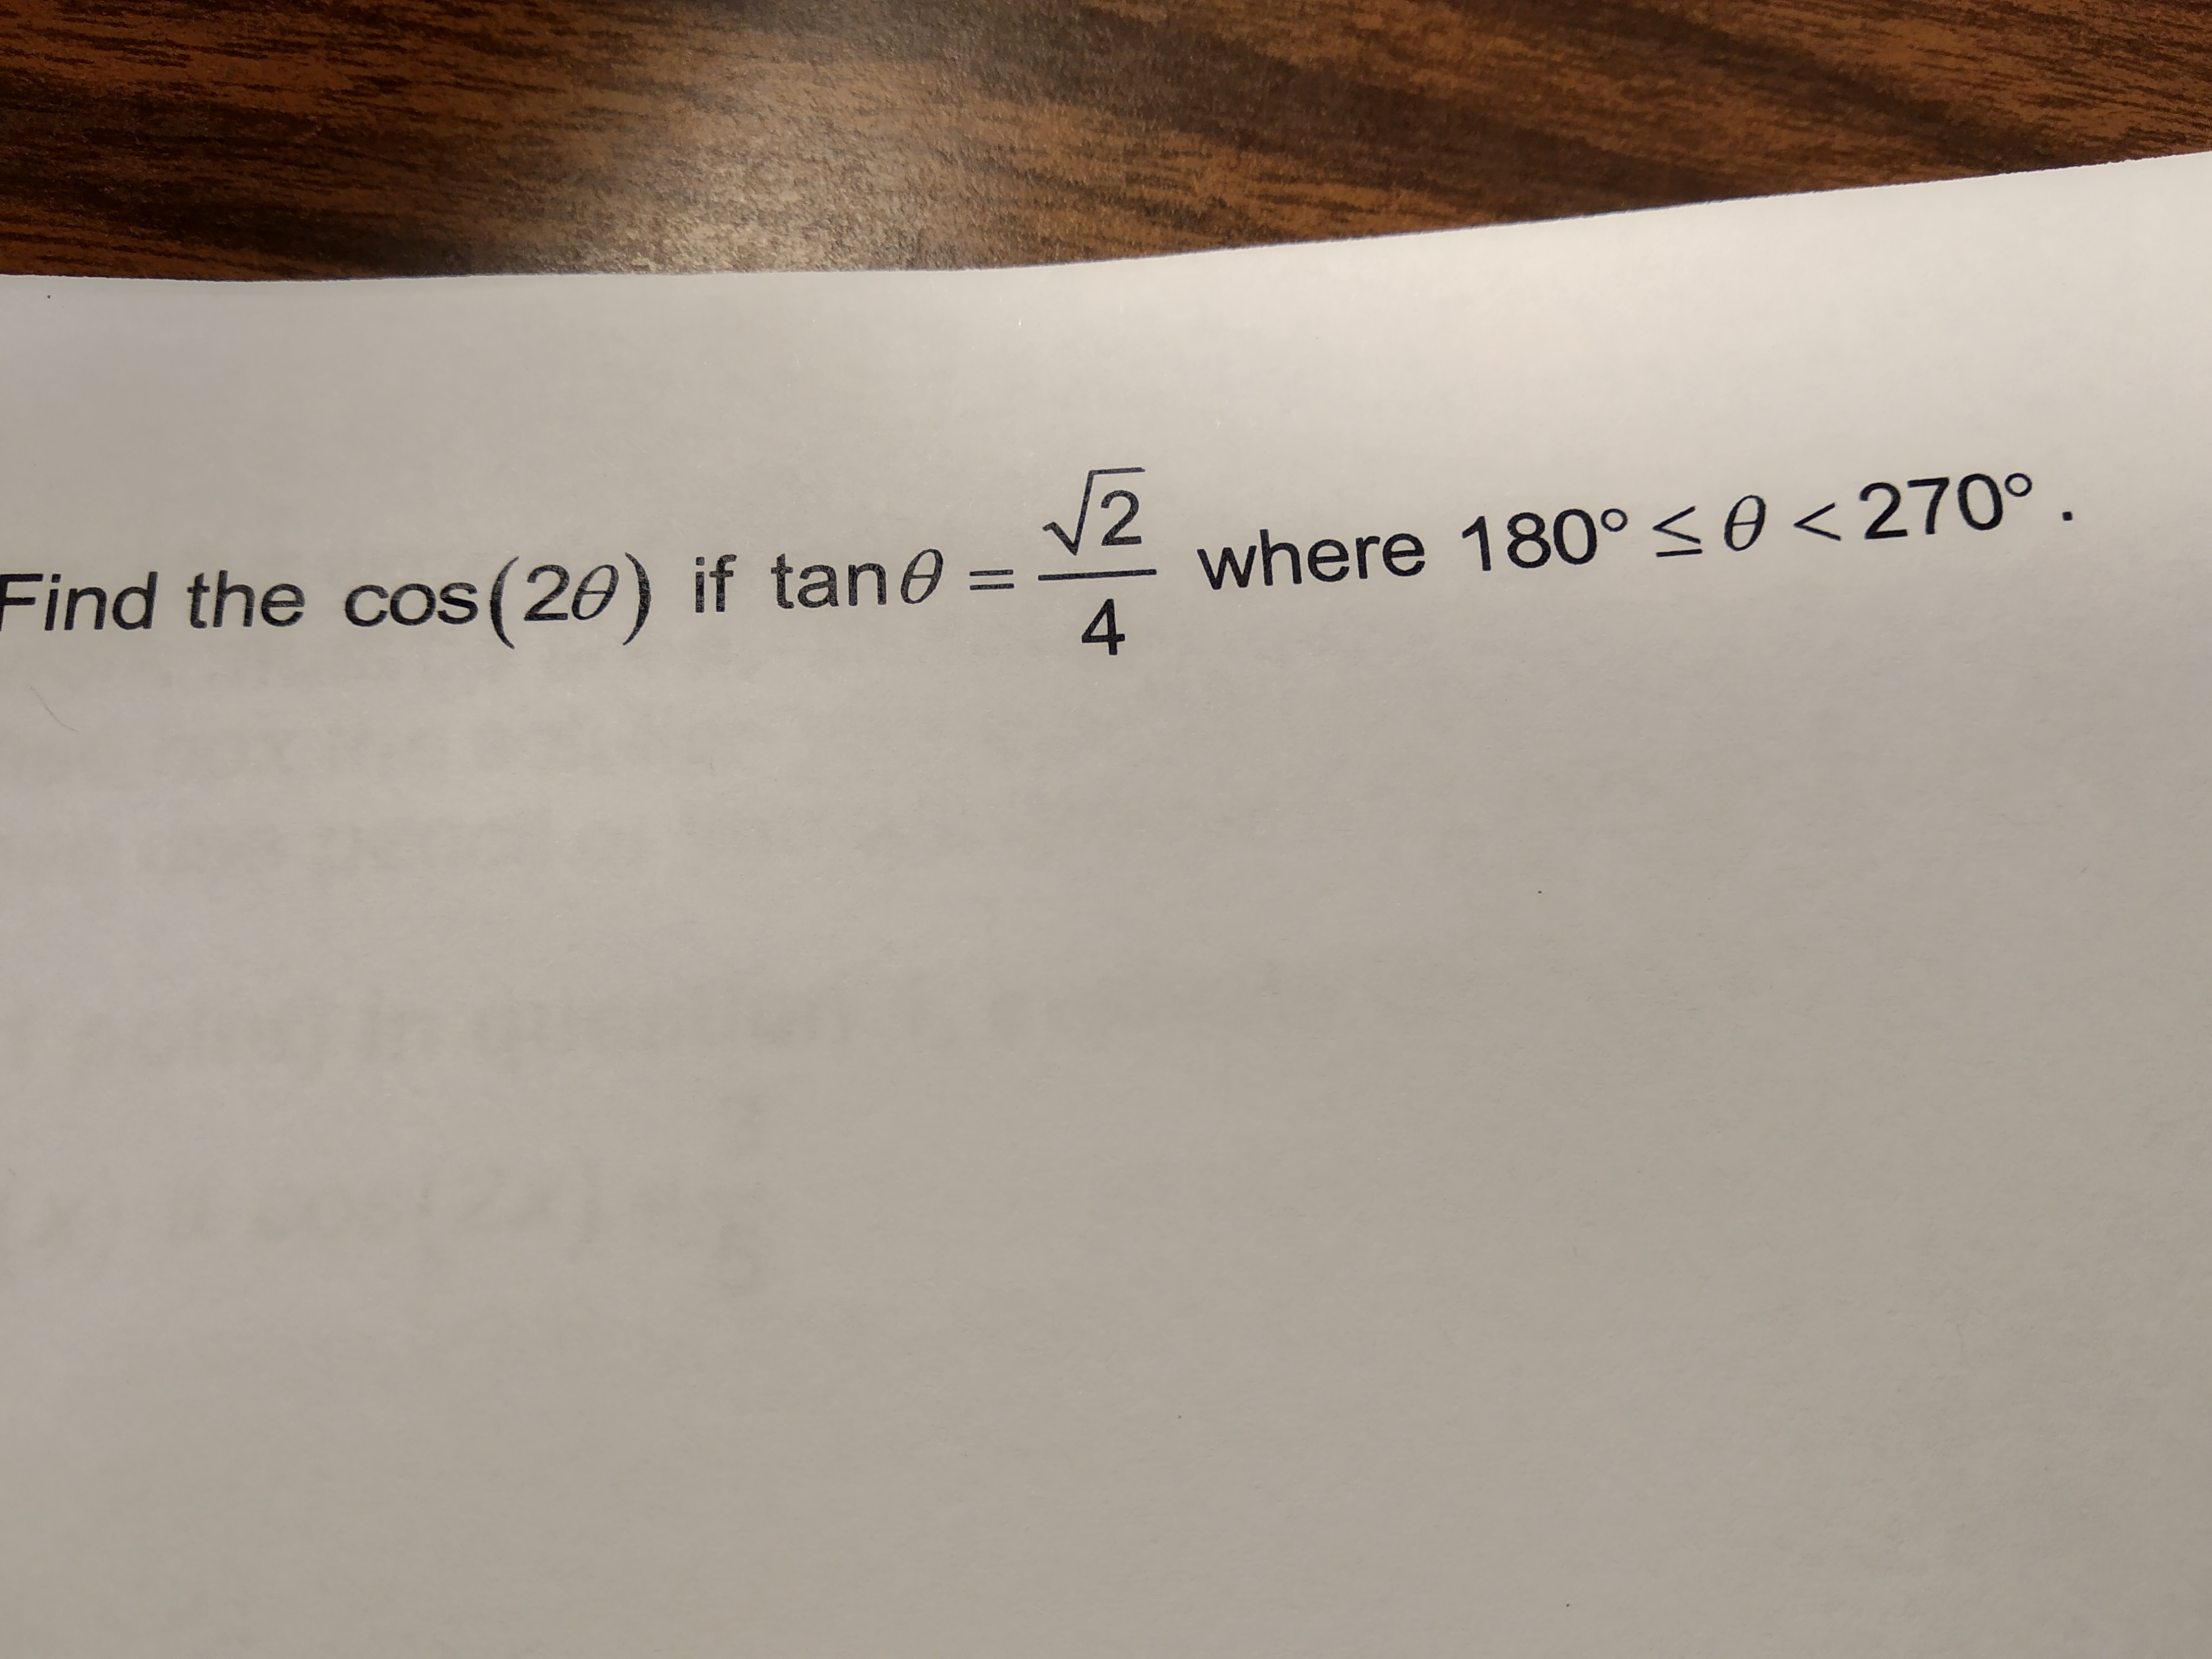 2 Find the cos(20) if tan9-_ where 180% θ <270